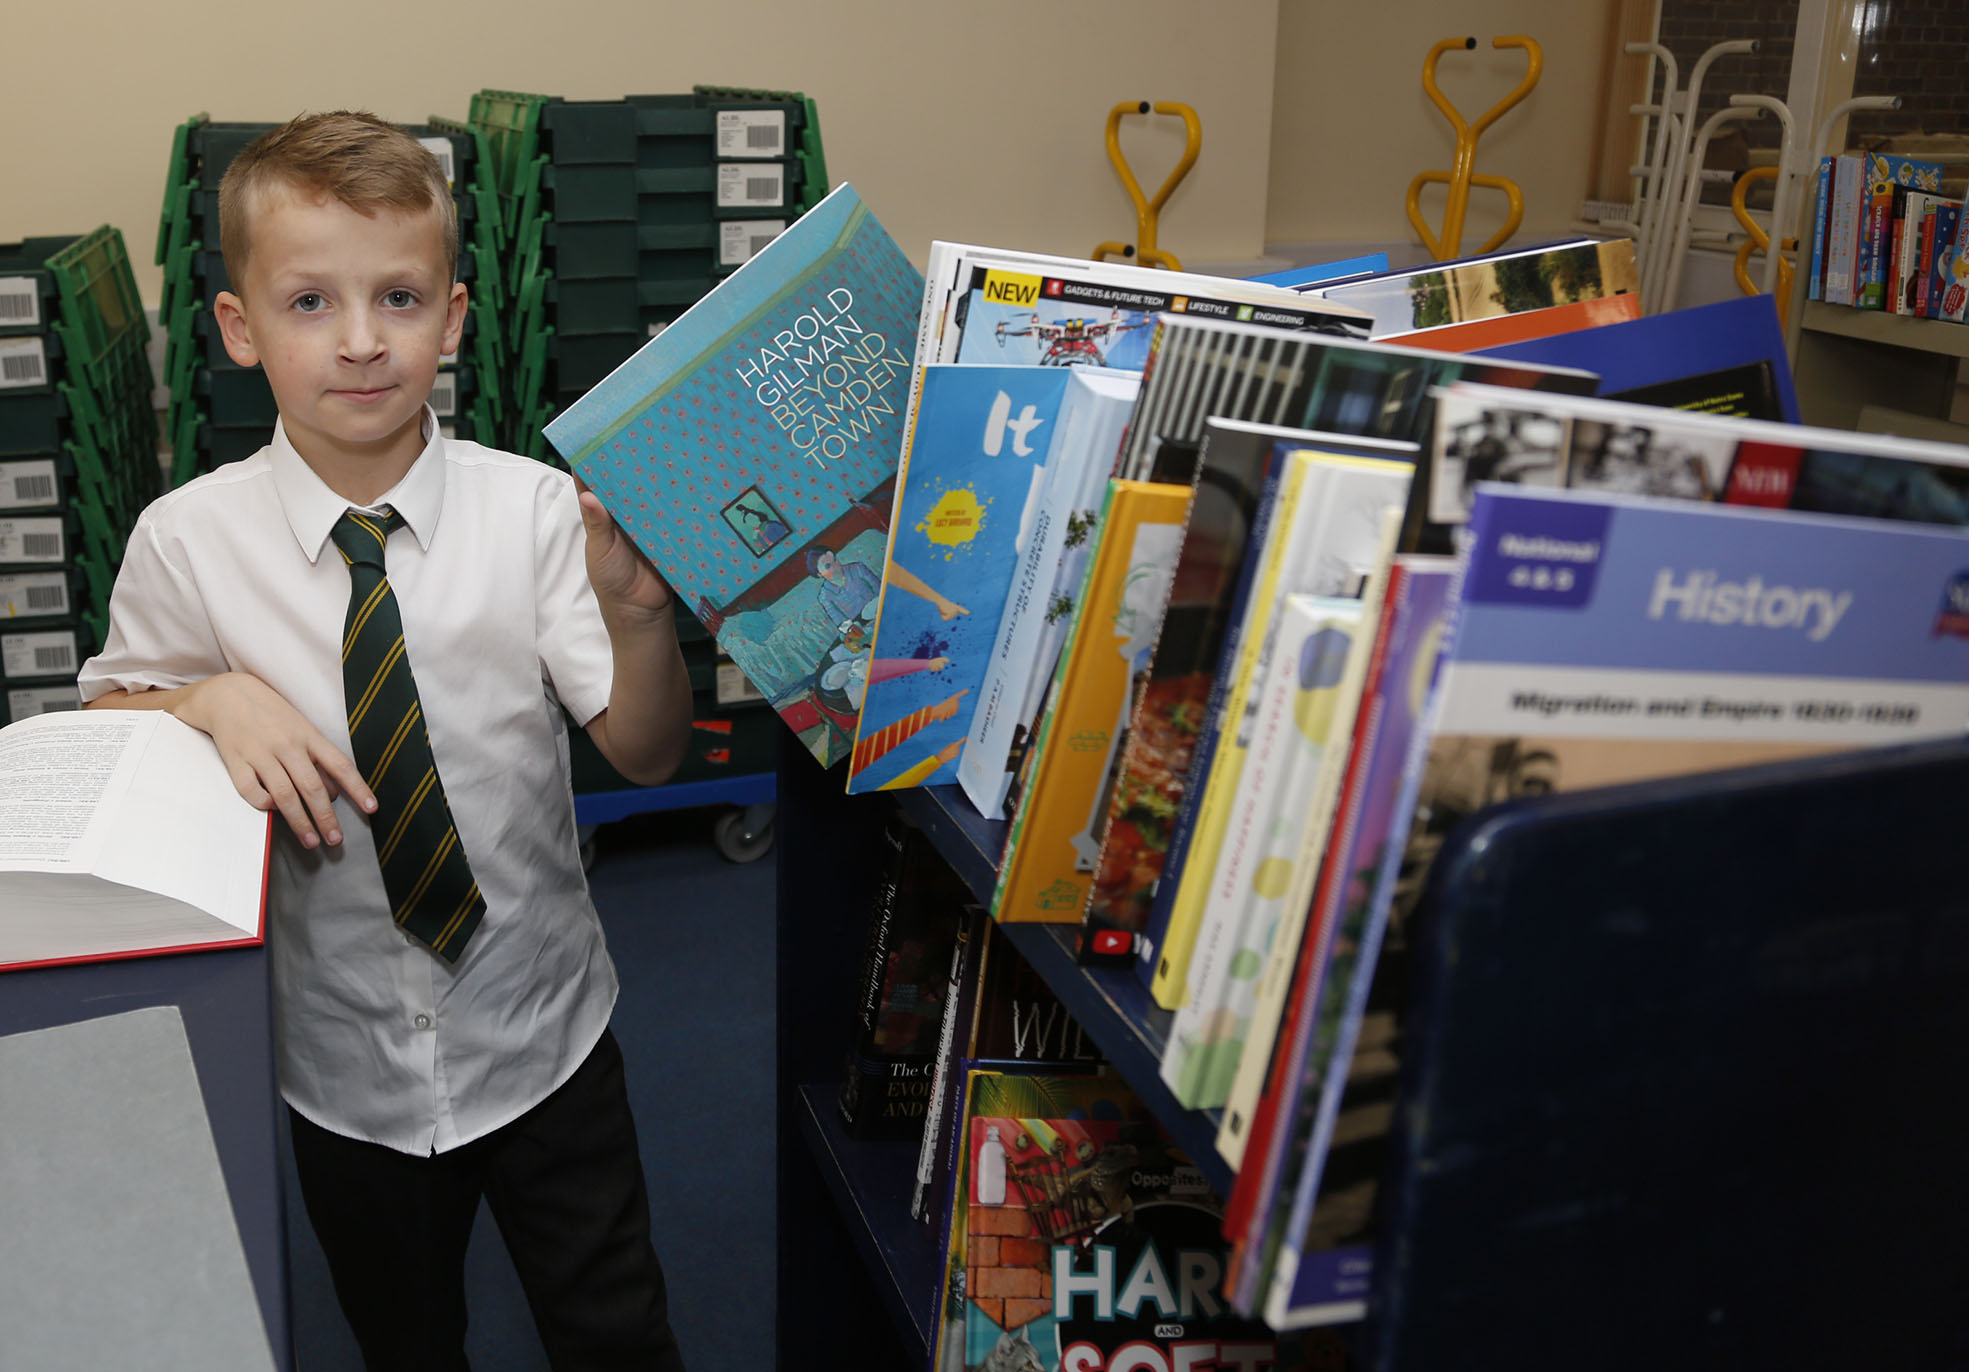 A school boy sorting a bookshelf as librarian at the National Library of Wales Takeover Day.